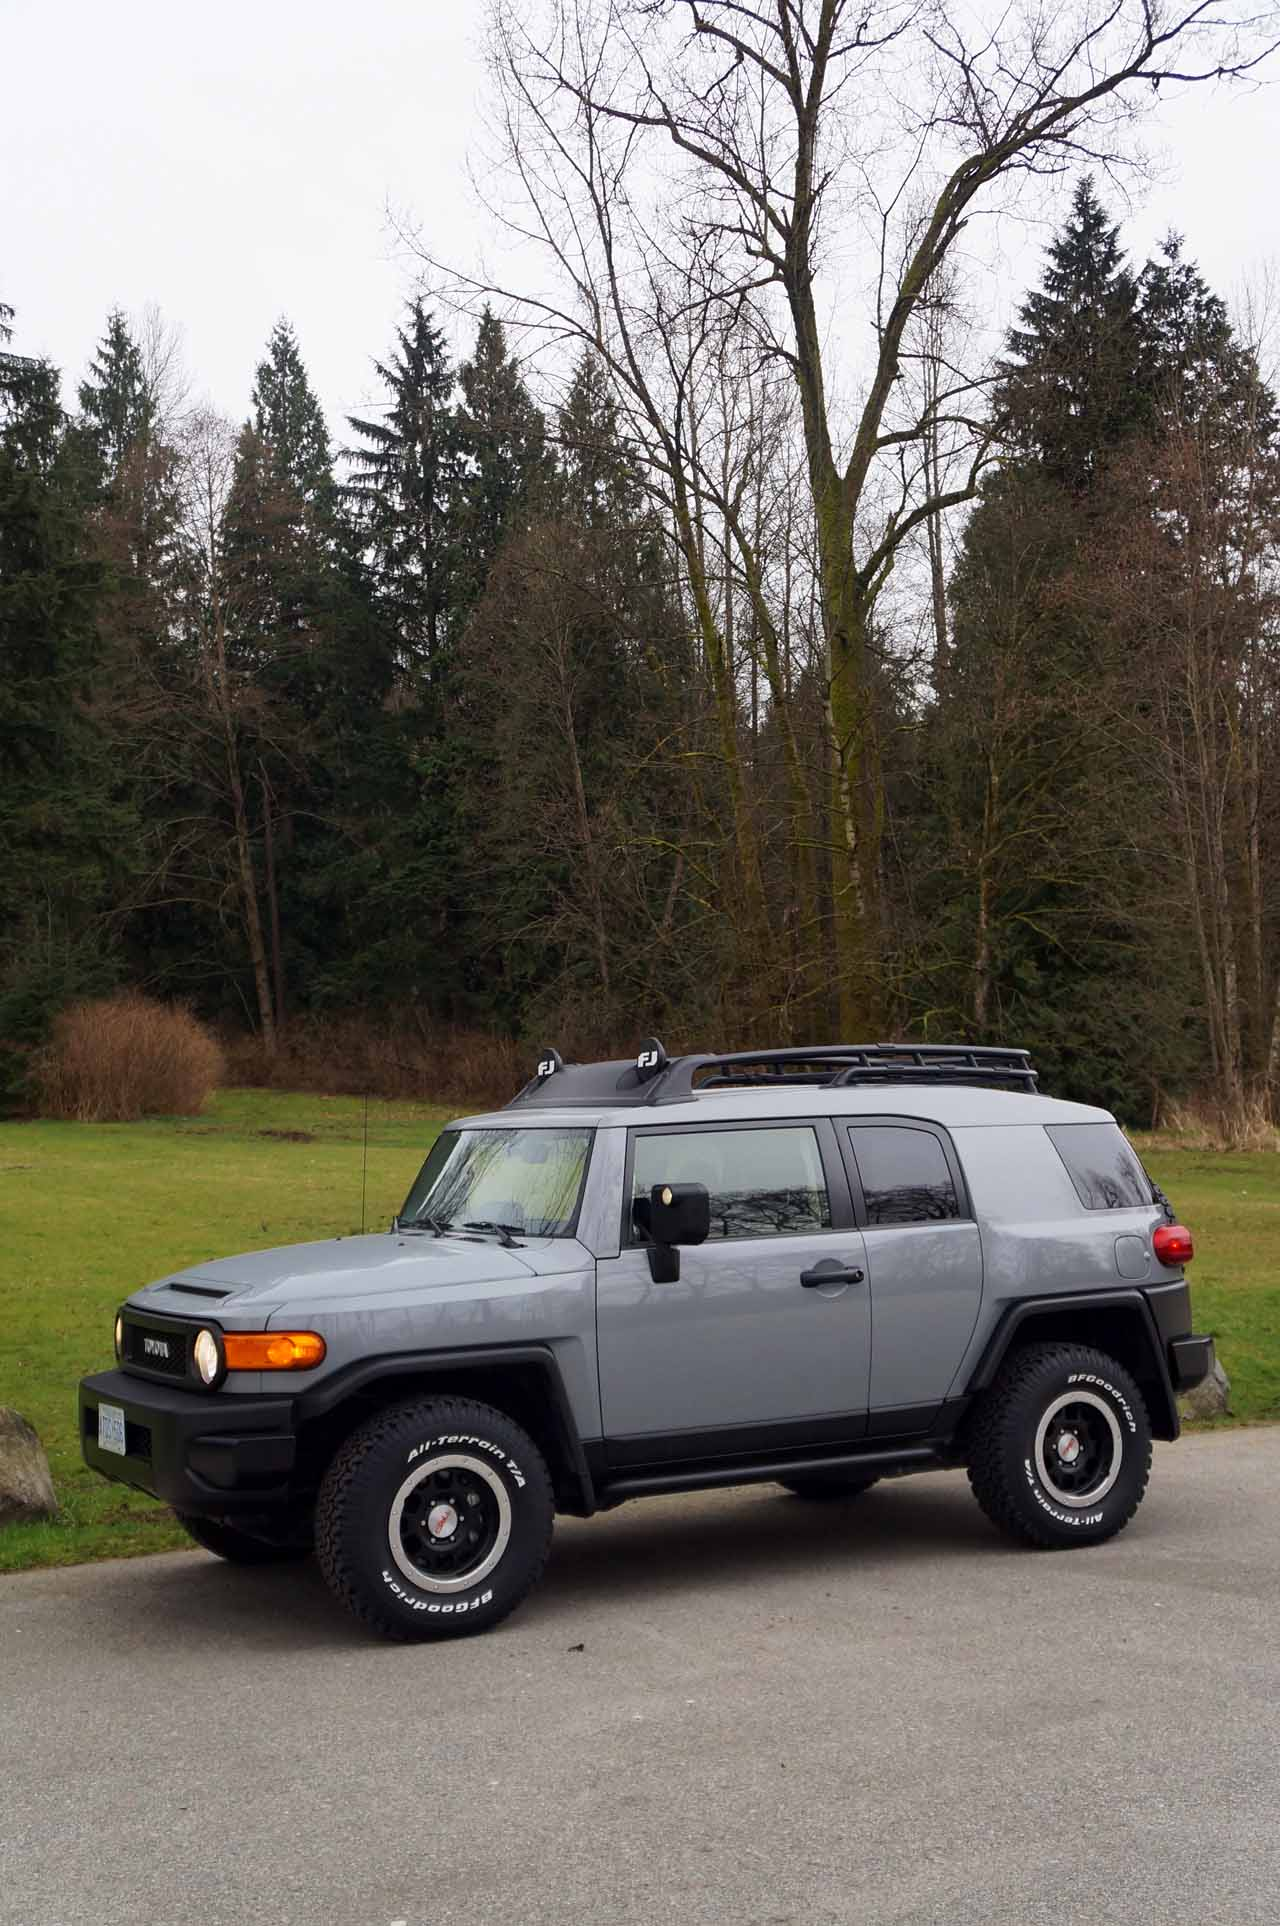 2013 Toyota Fj Cruiser Road Test Review Carcostcanada Trailer Wiring Ive Seen The Around Town For Last Few Years But I Hadnt Had Opportunity To Drive One Until Now Back In